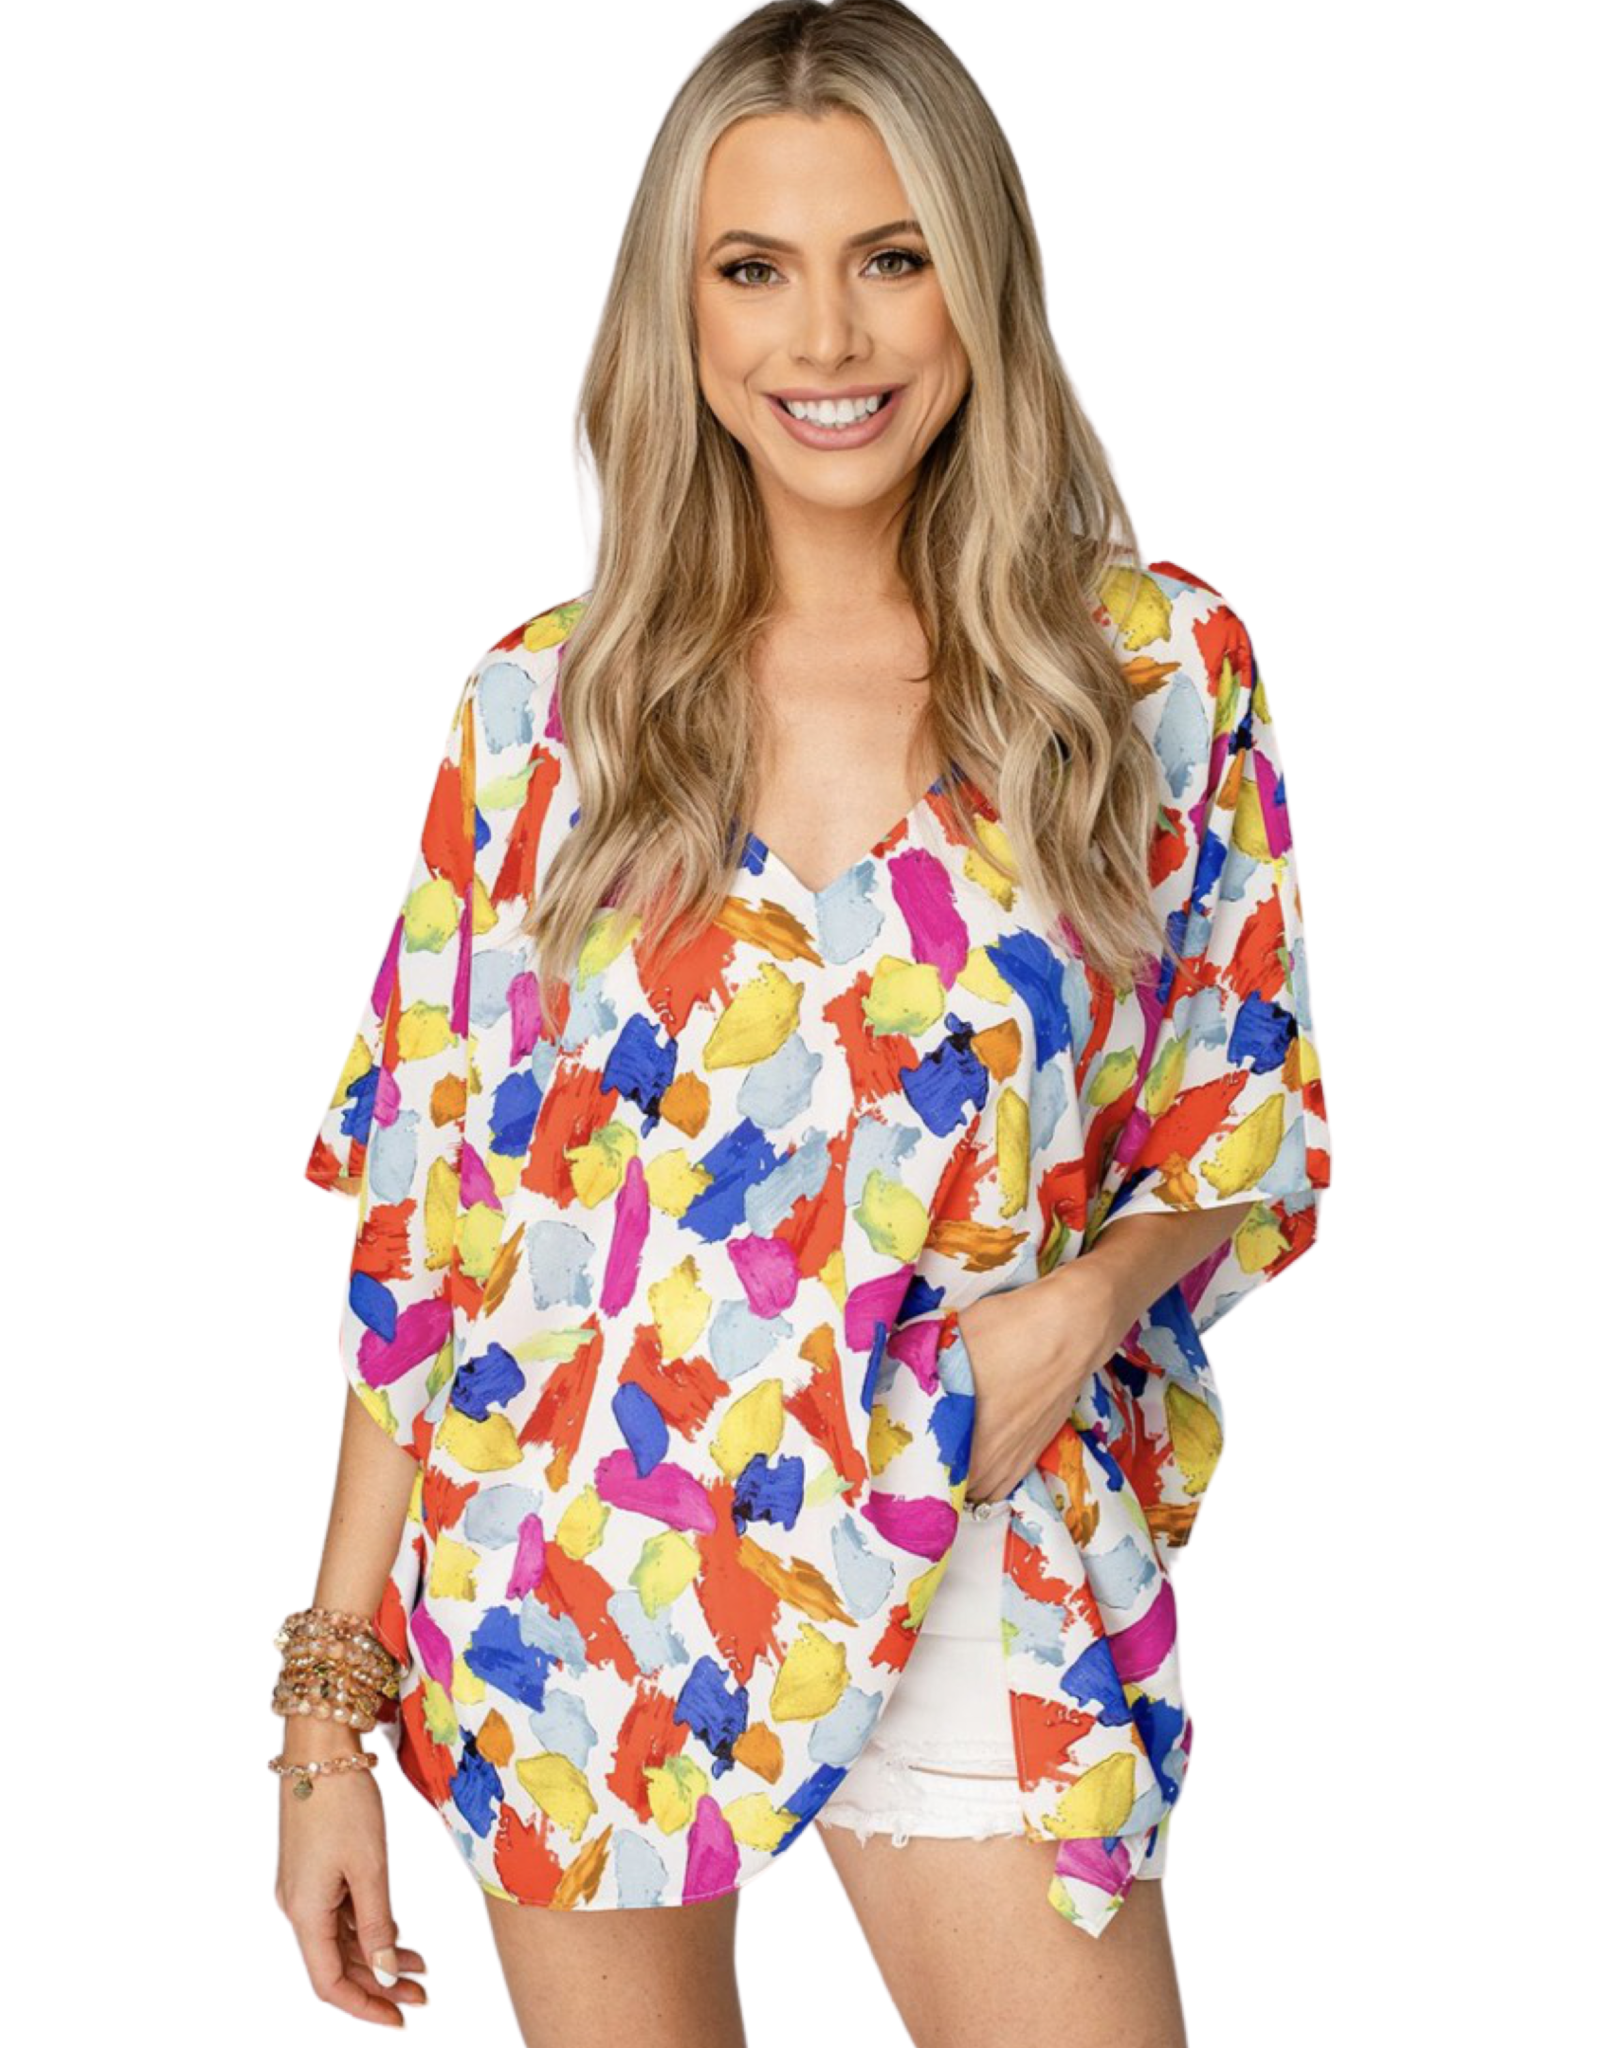 Buddy Love North Shapes Away Top